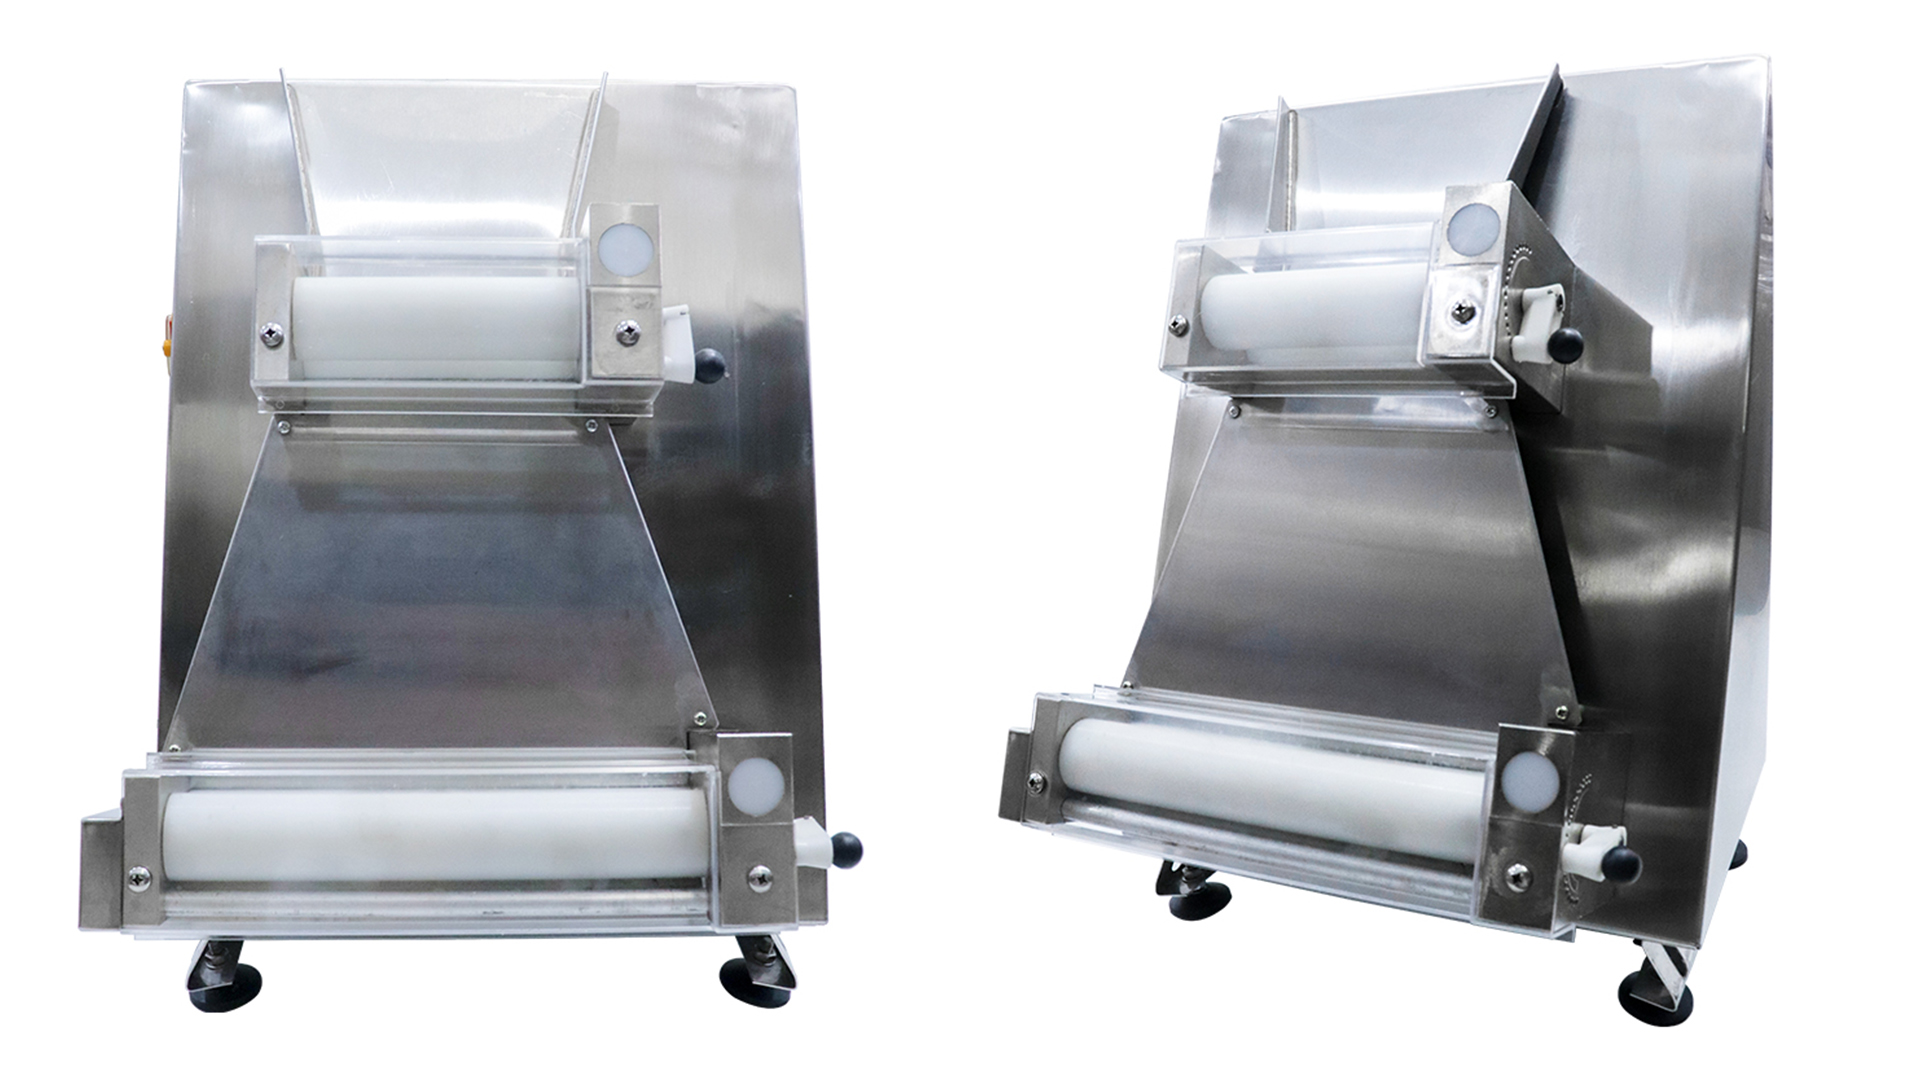 Commercial Pizza Rolling Machine Dough Press Machine Roller Sheeter